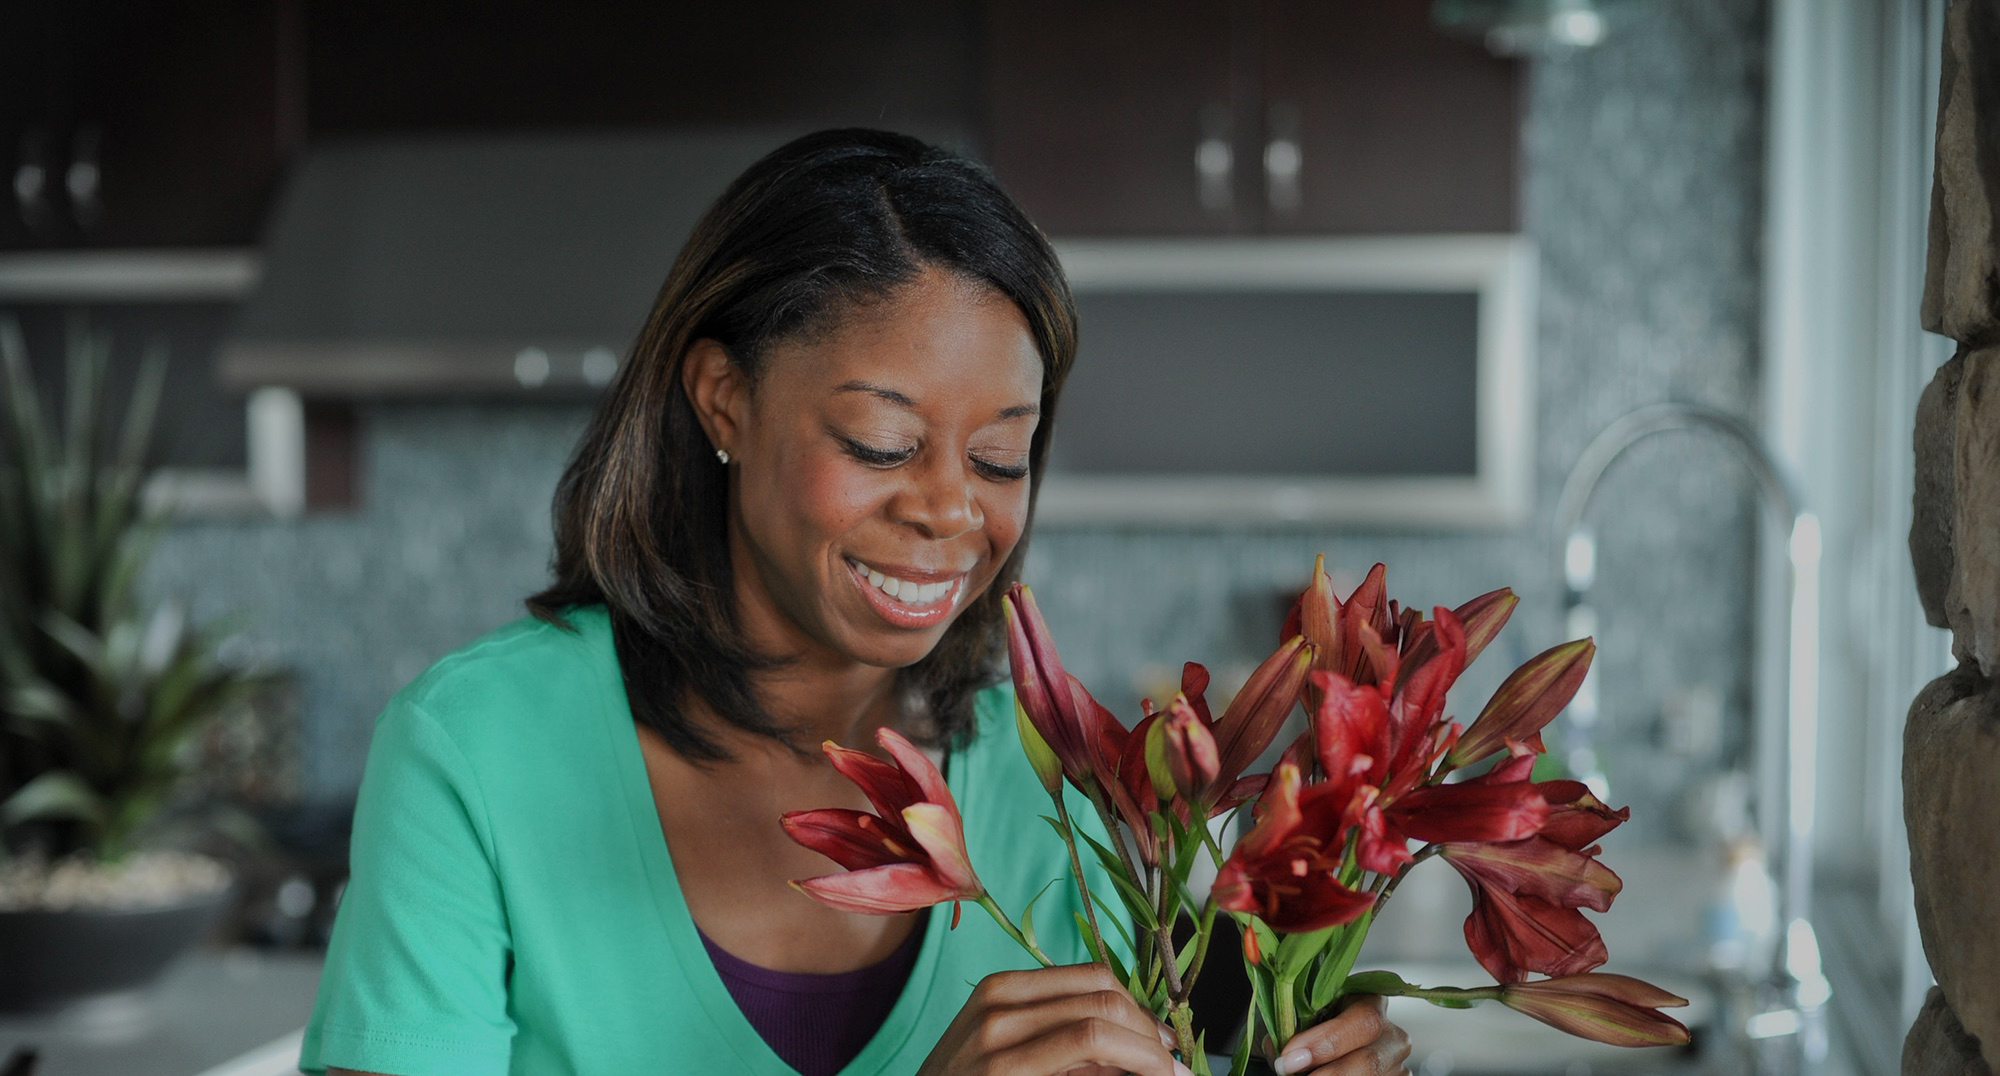 Woman arranging flowers at home.